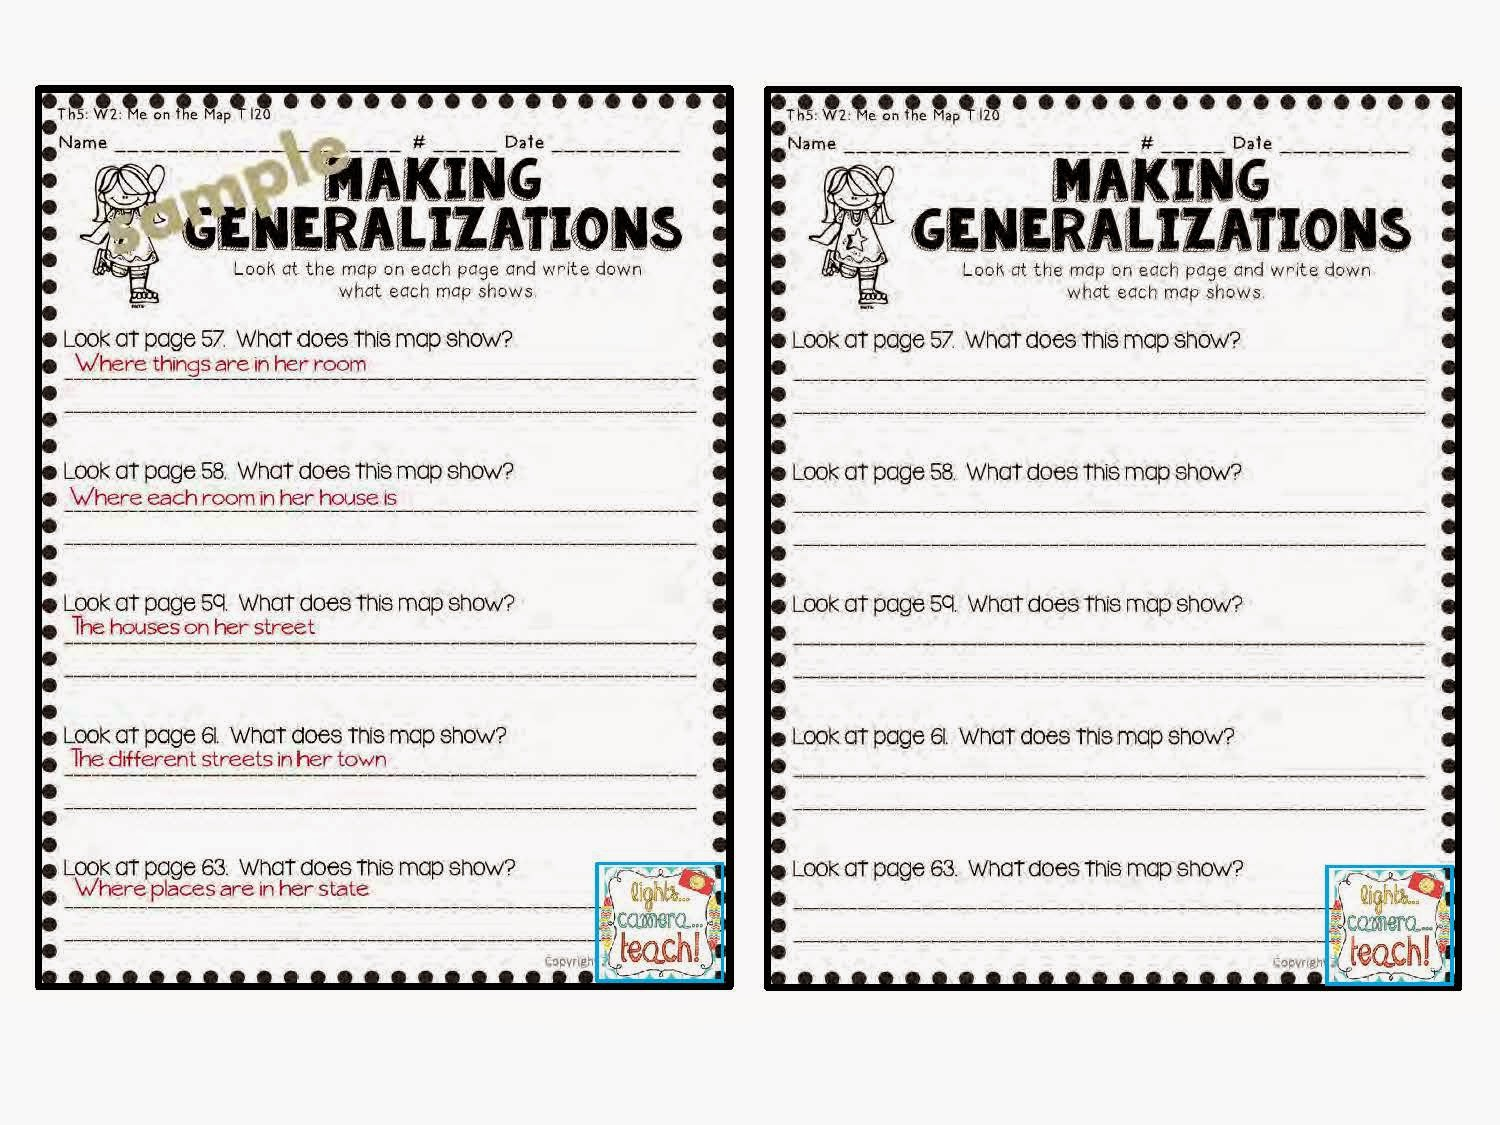 Worksheets Generalization Worksheets making generalizations worksheets free library joindesignseattle